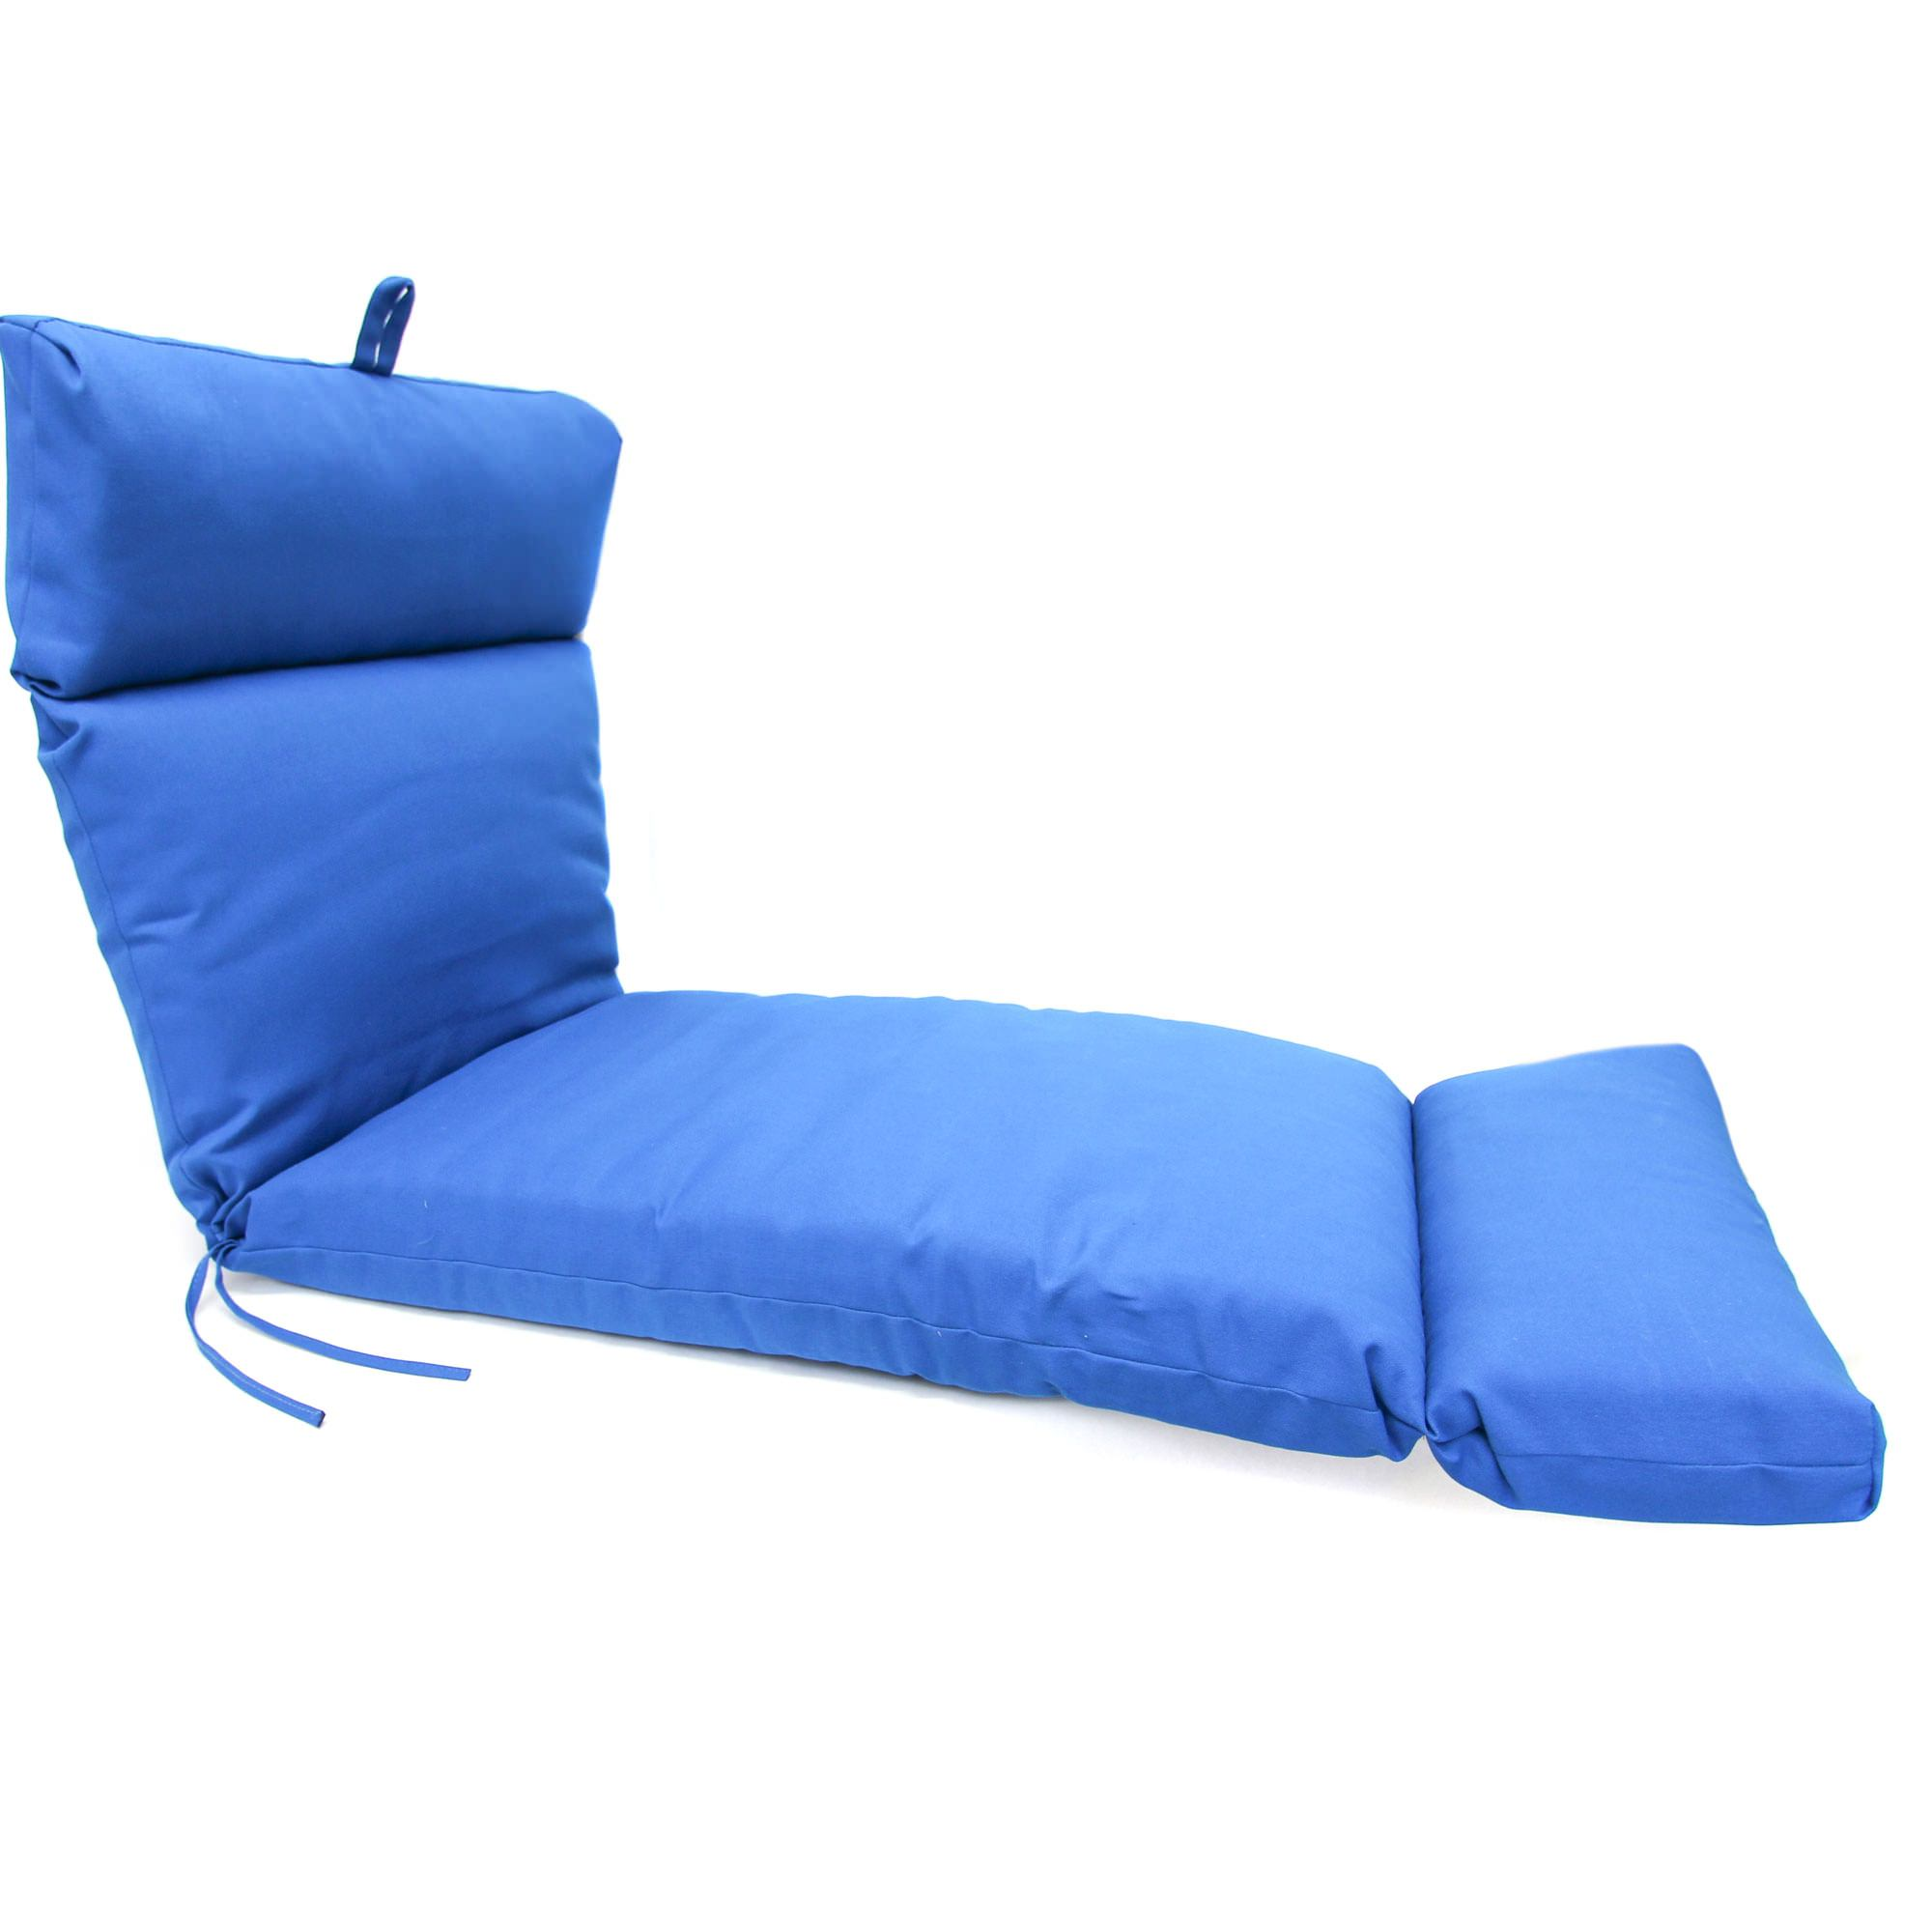 Pacific blue chaise lounge cushion dfohome for Blue chaise cushions